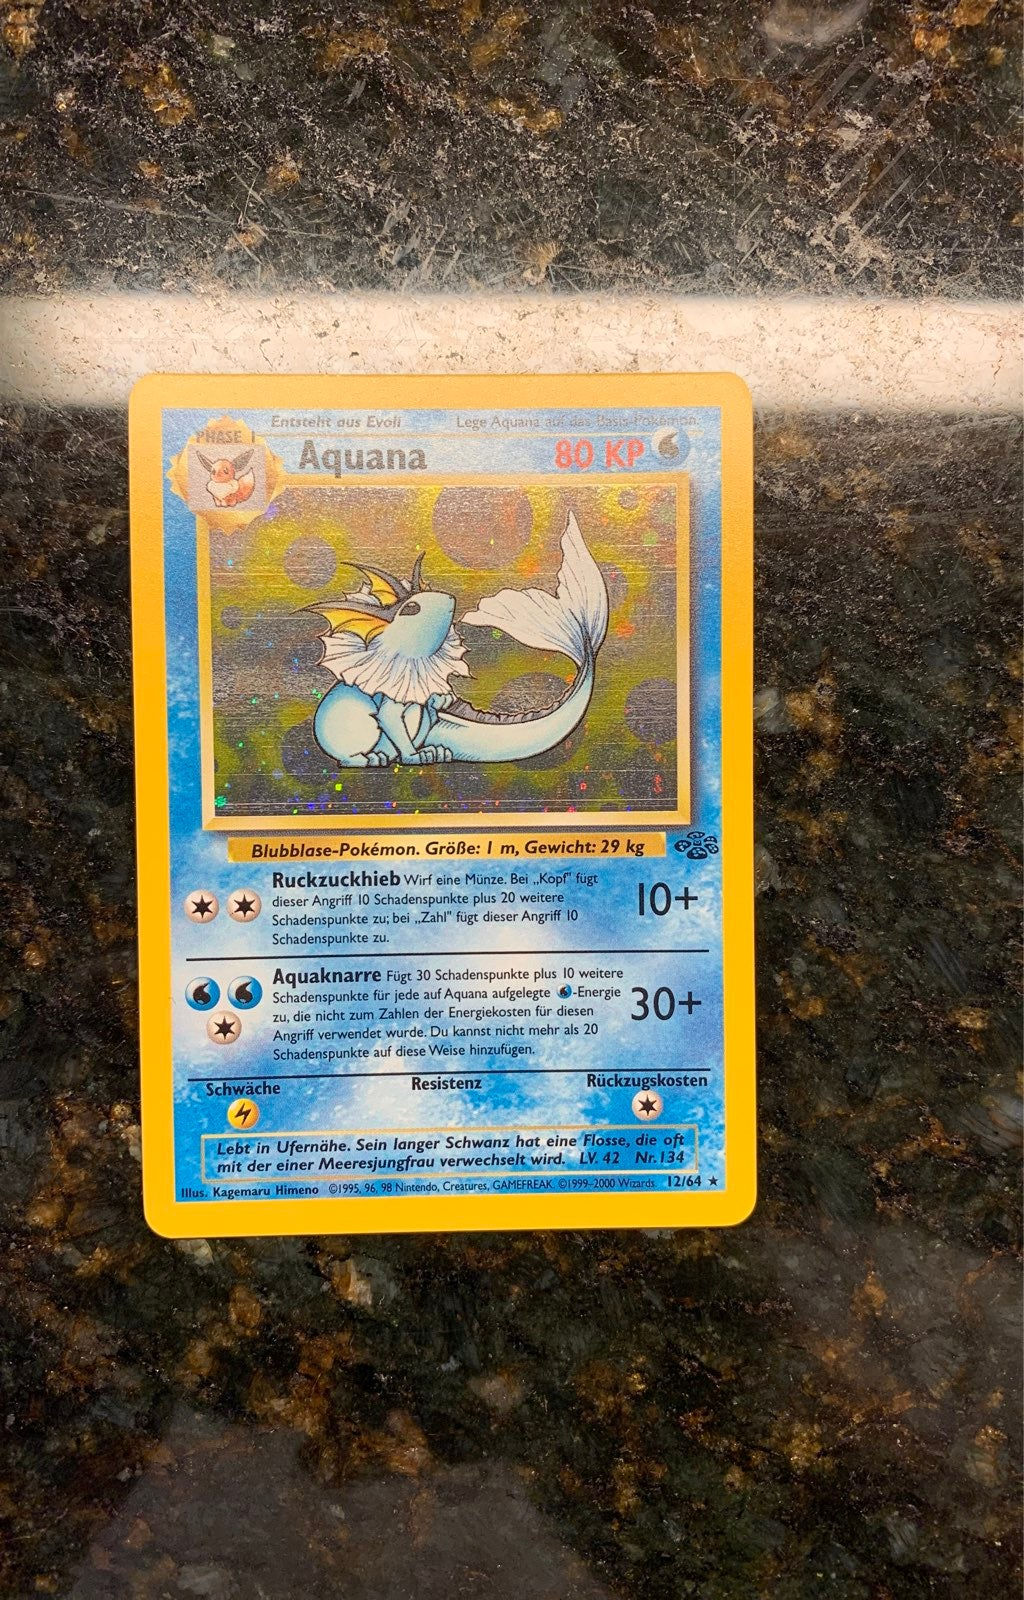 Vaporeon (Aquana) German Pokemon